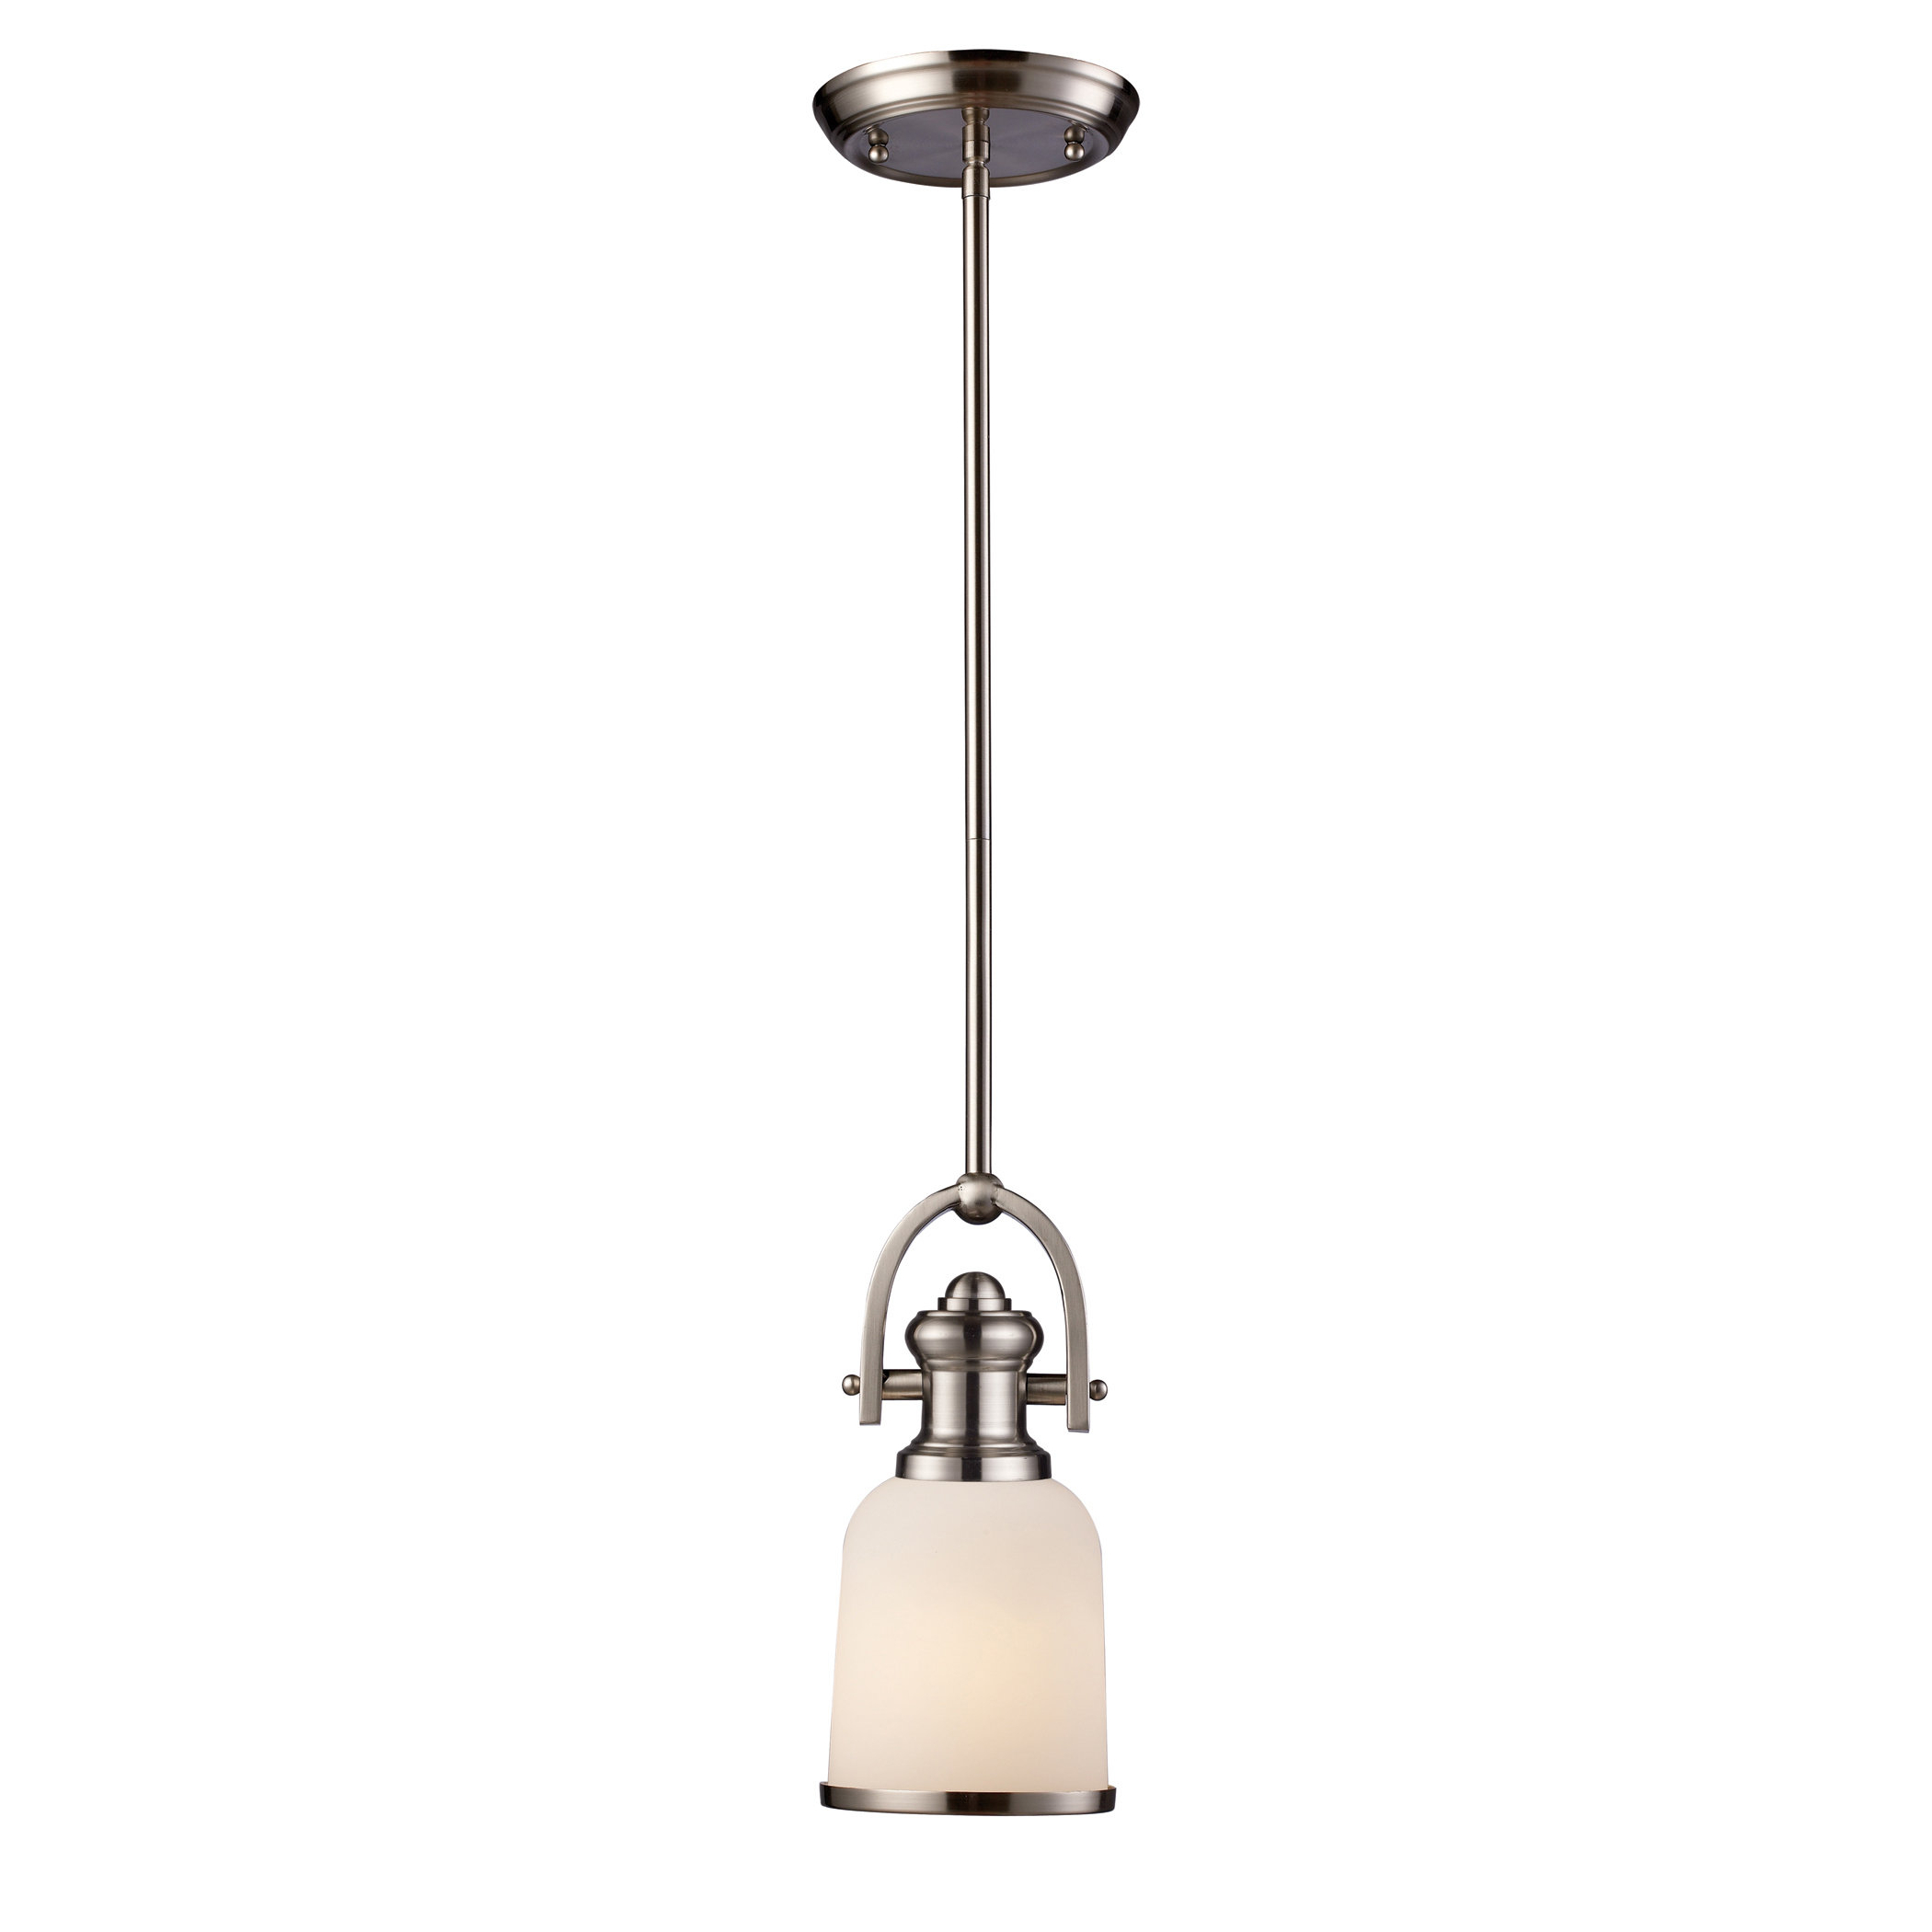 Macon 1 Light Single Dome Pendants Throughout Popular Boornazian 1 Light Single Bell Pendant (View 8 of 20)